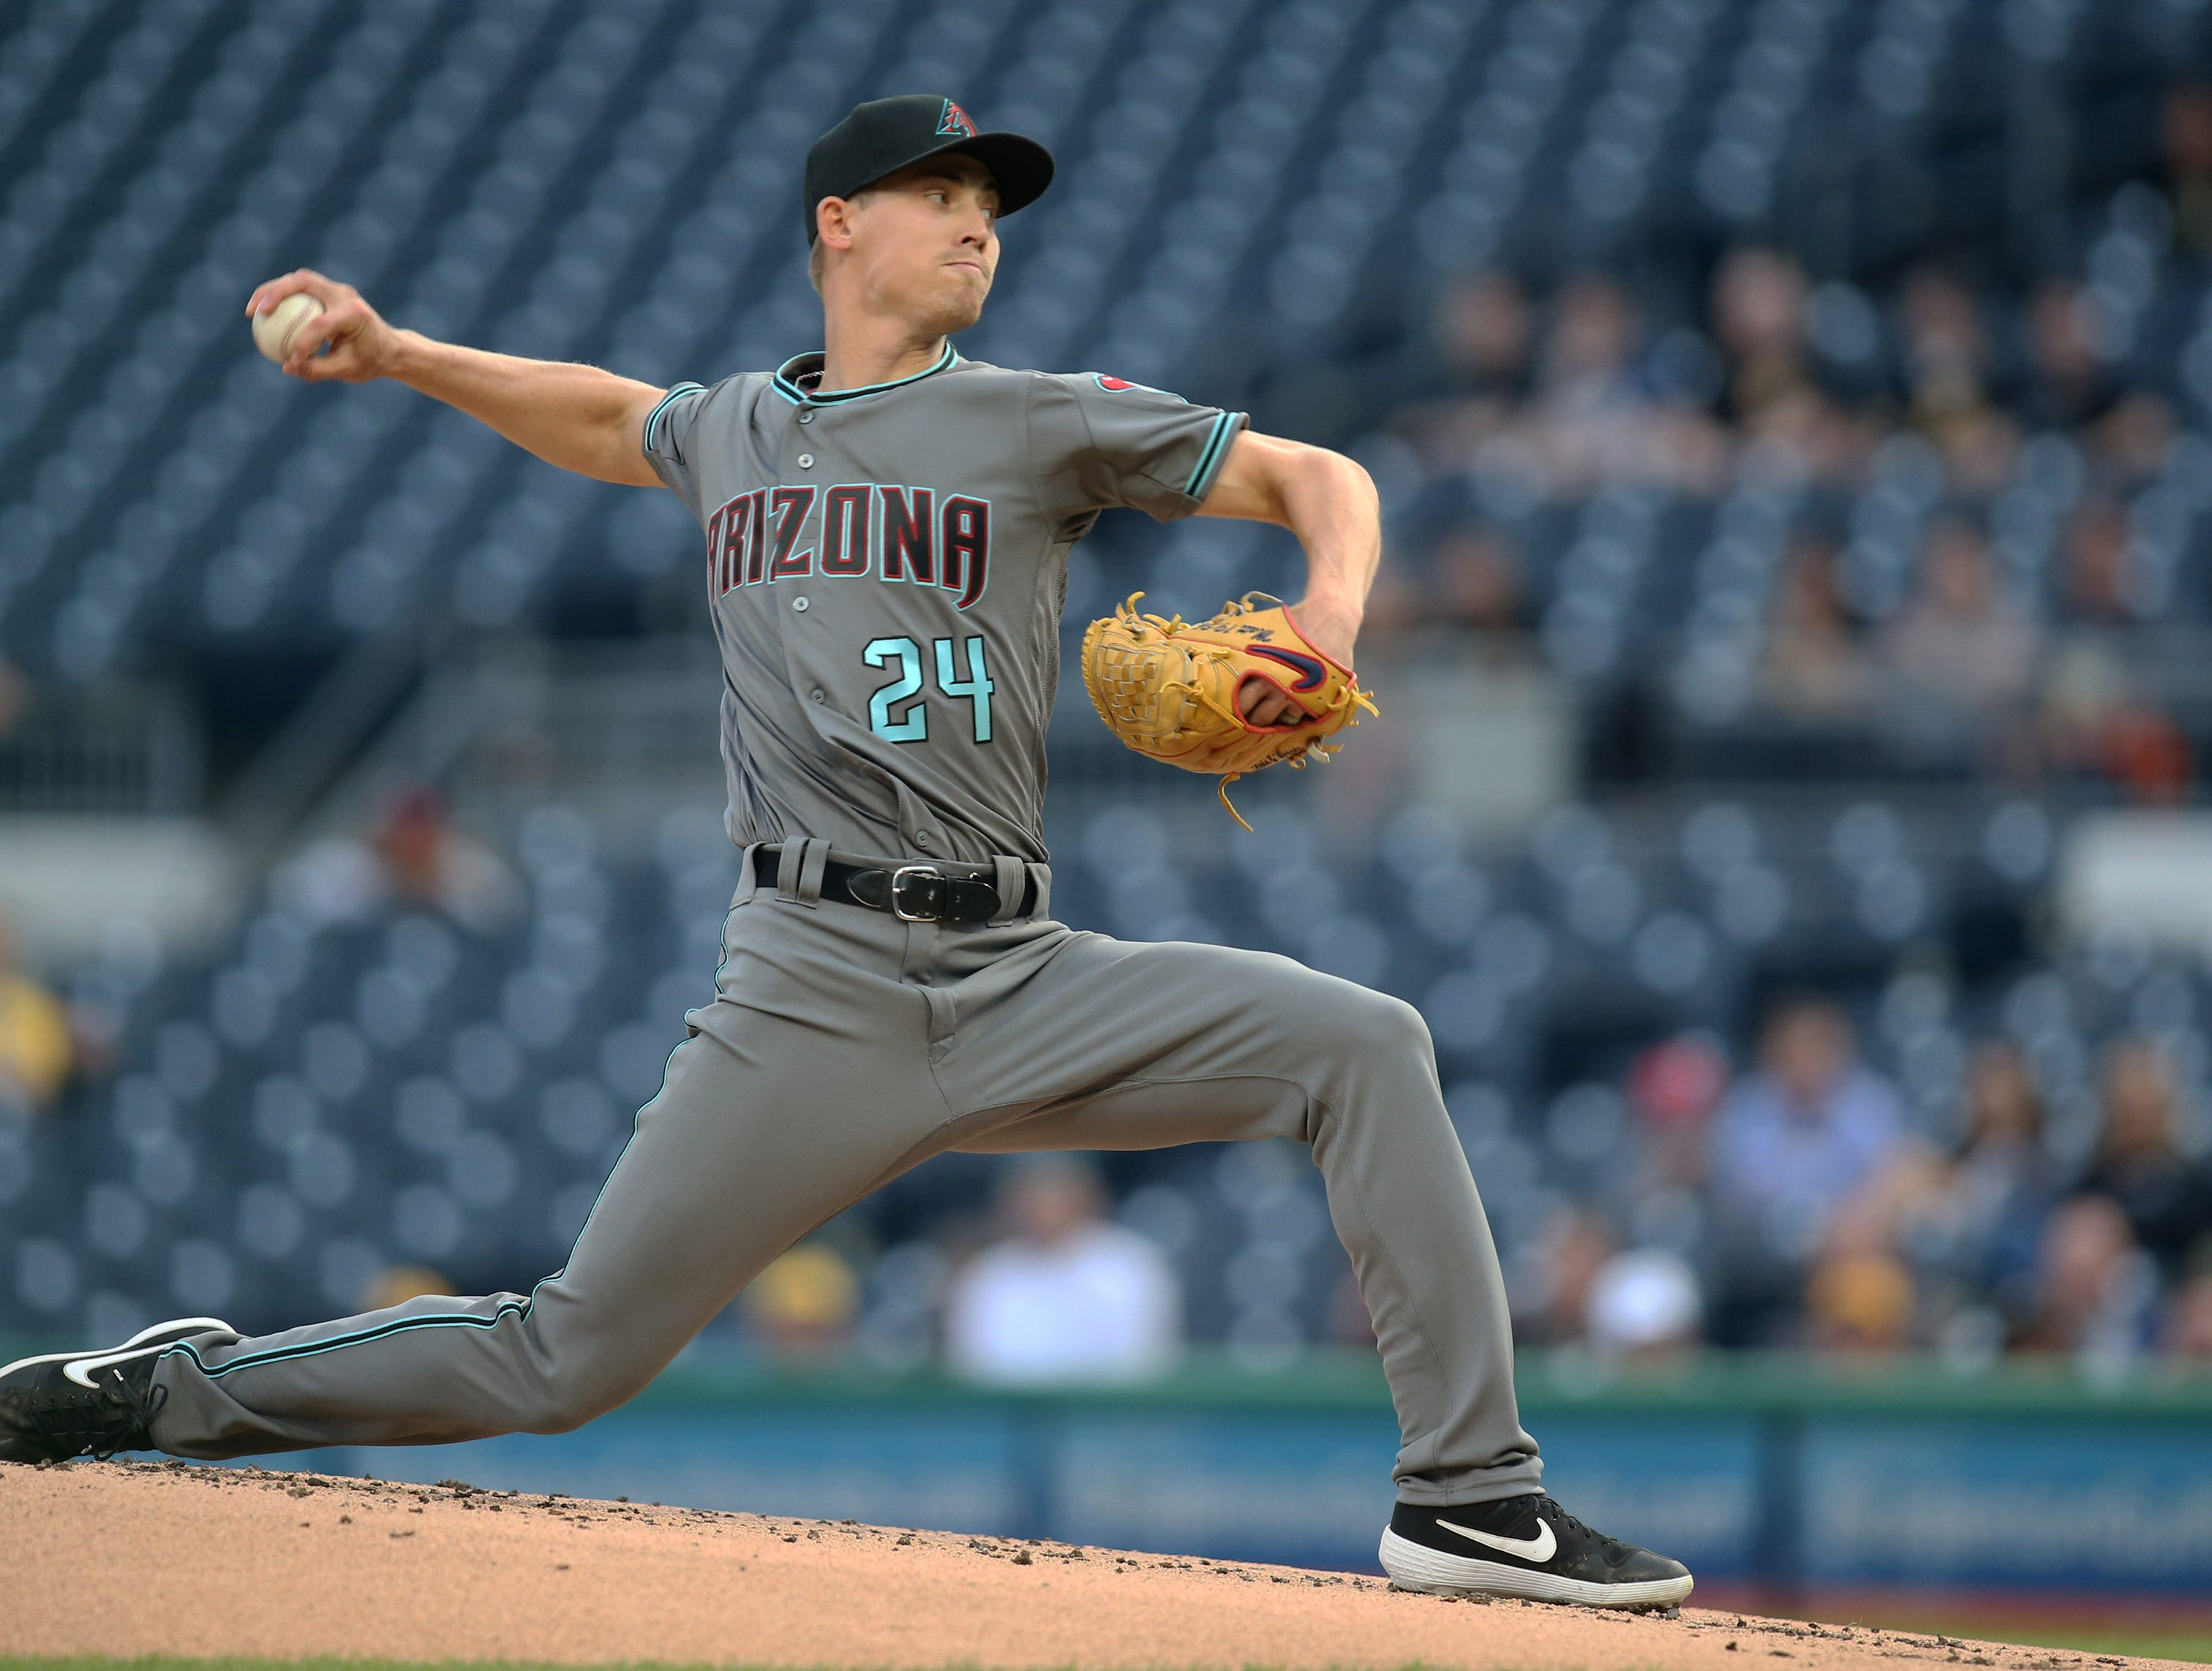 Apr 23, 2019; Pittsburgh, PA, USA;  Arizona Diamondbacks starting pitcher Luke Weaver (24) delivers a pitch against the Pittsburgh Pirates during the first inning at PNC Park. Mandatory Credit: Charles LeClaire-USA TODAY Sports